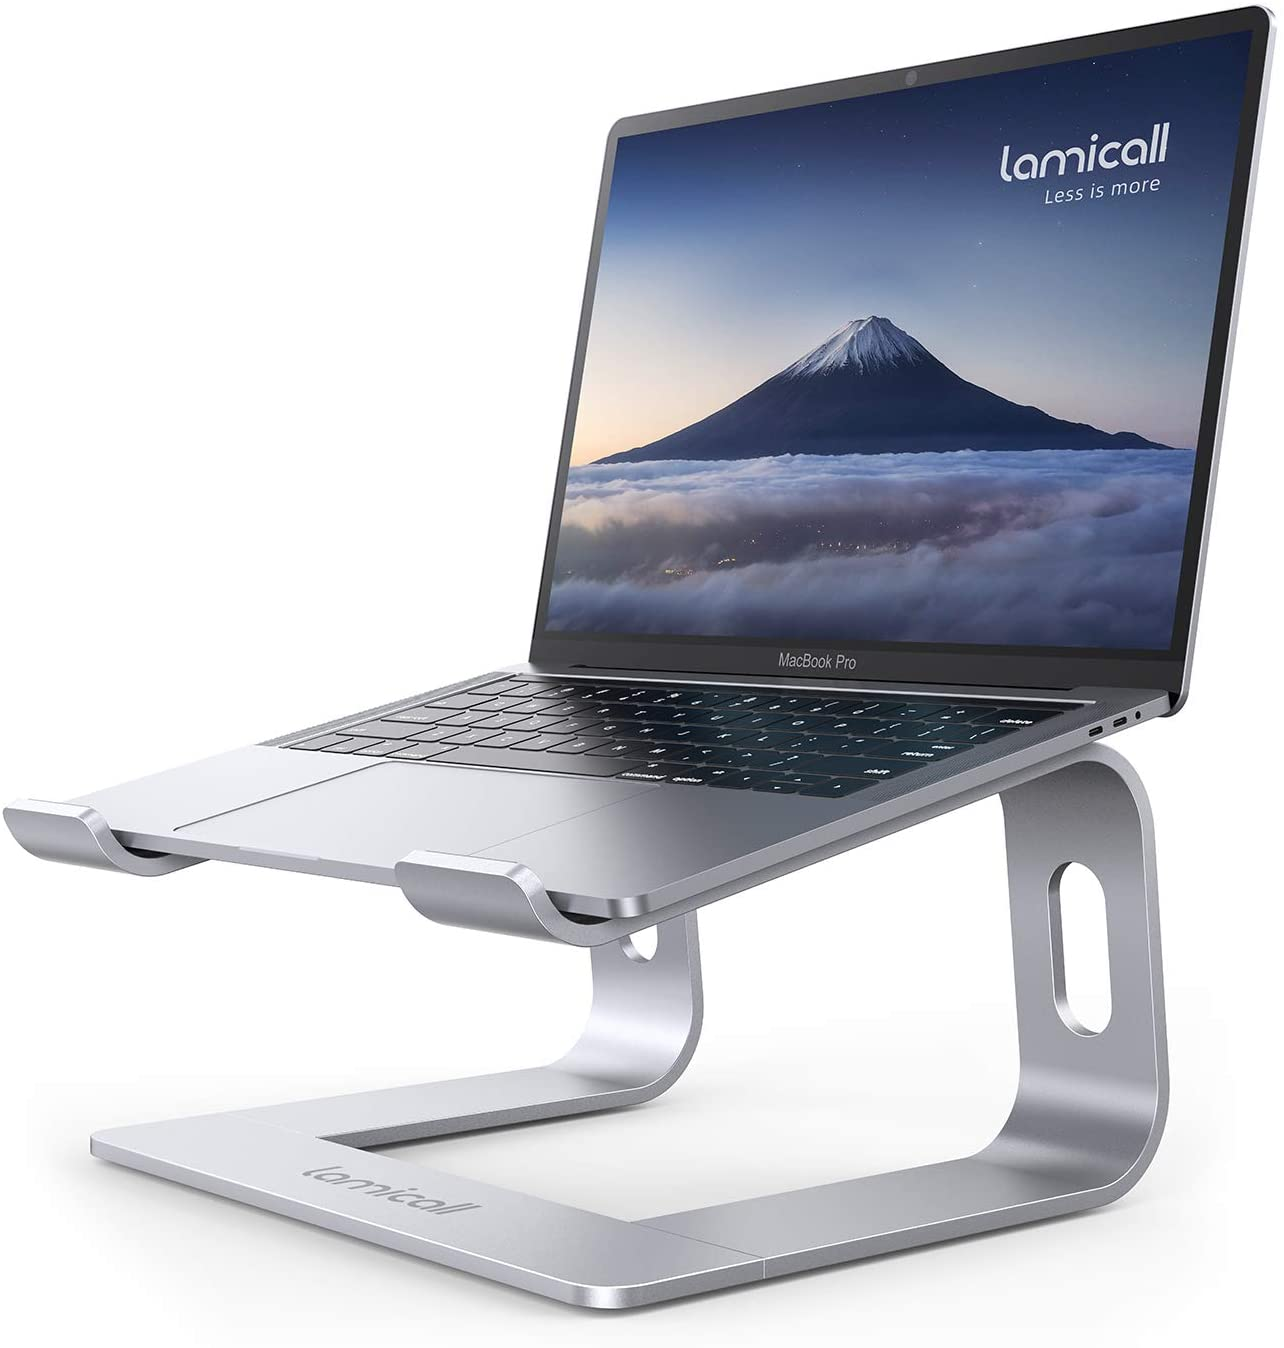 Laptop Stand, Lamicall Laptop Riser Holder : Ergonomic Detachable Aluminum Computer Notebook Stand Elevator for Desk, Compatible with Apple MacBook Air Pro, Dell XPS, HP, Lenovo (10-15.6'') - Silver